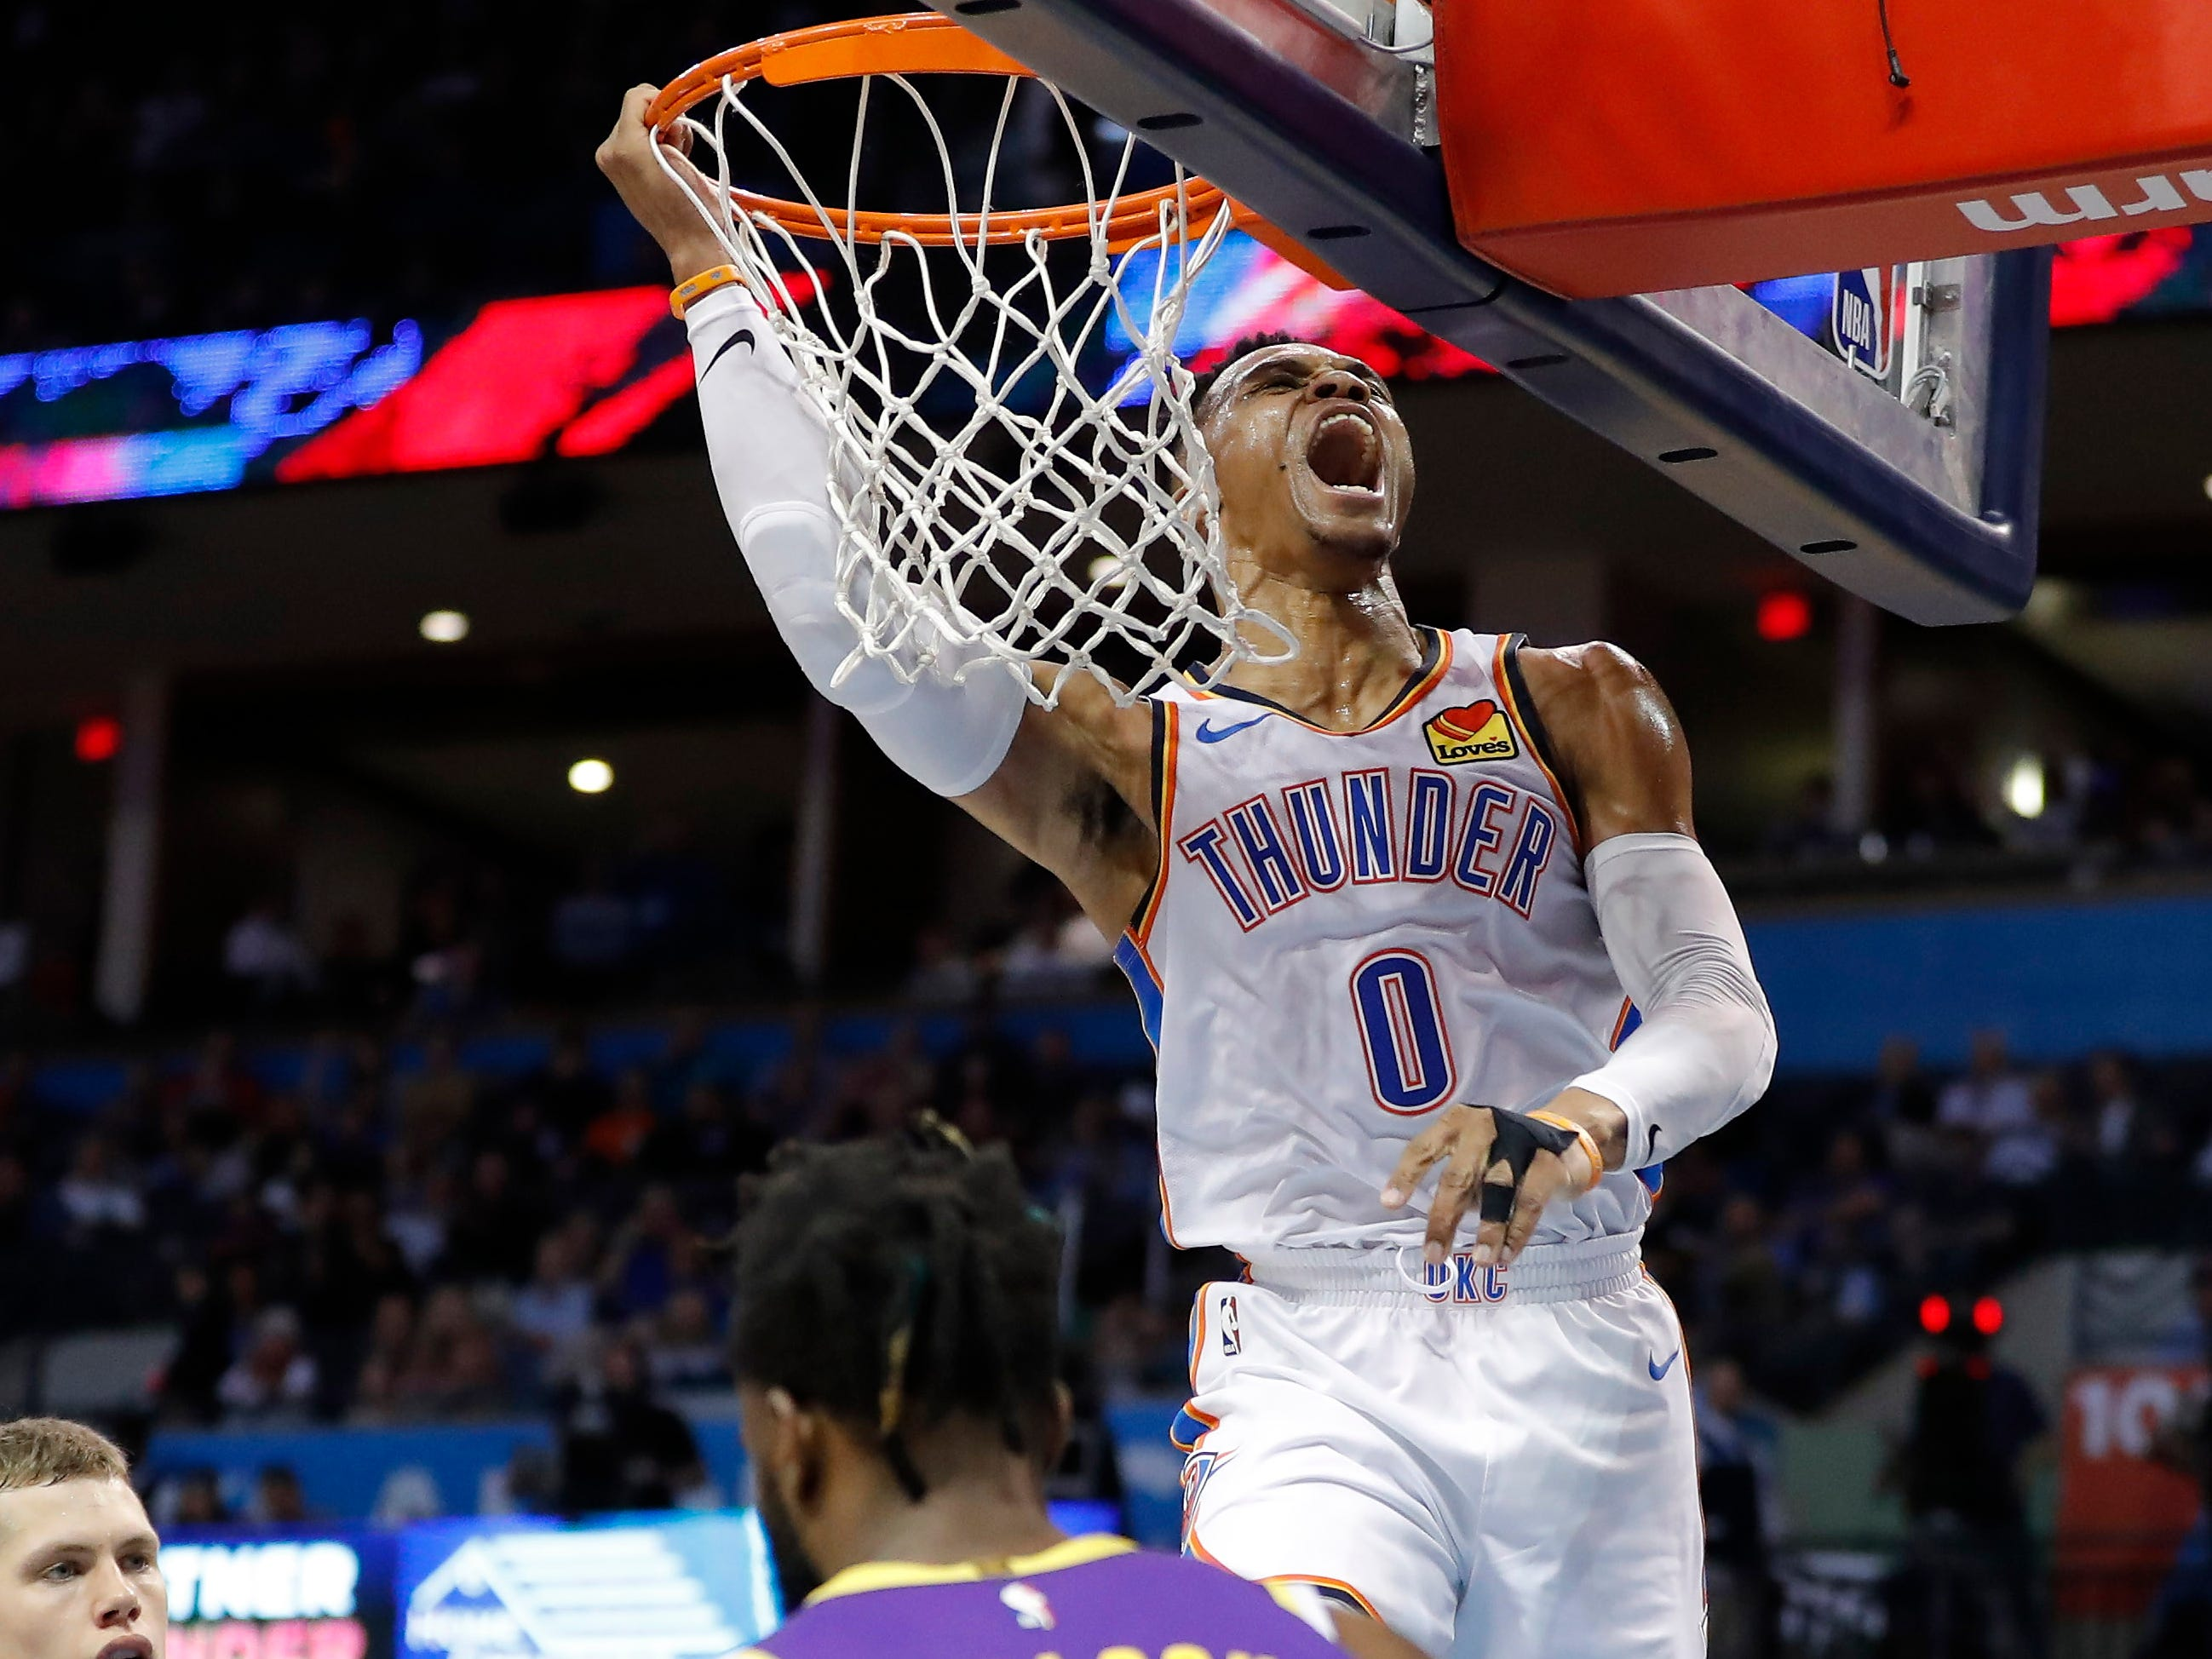 April 2: Oklahoma City Thunder guard Russell Westbrook celebrates after dunking the ball against the Los Angeles Lakers at Chesapeake Energy Arena.